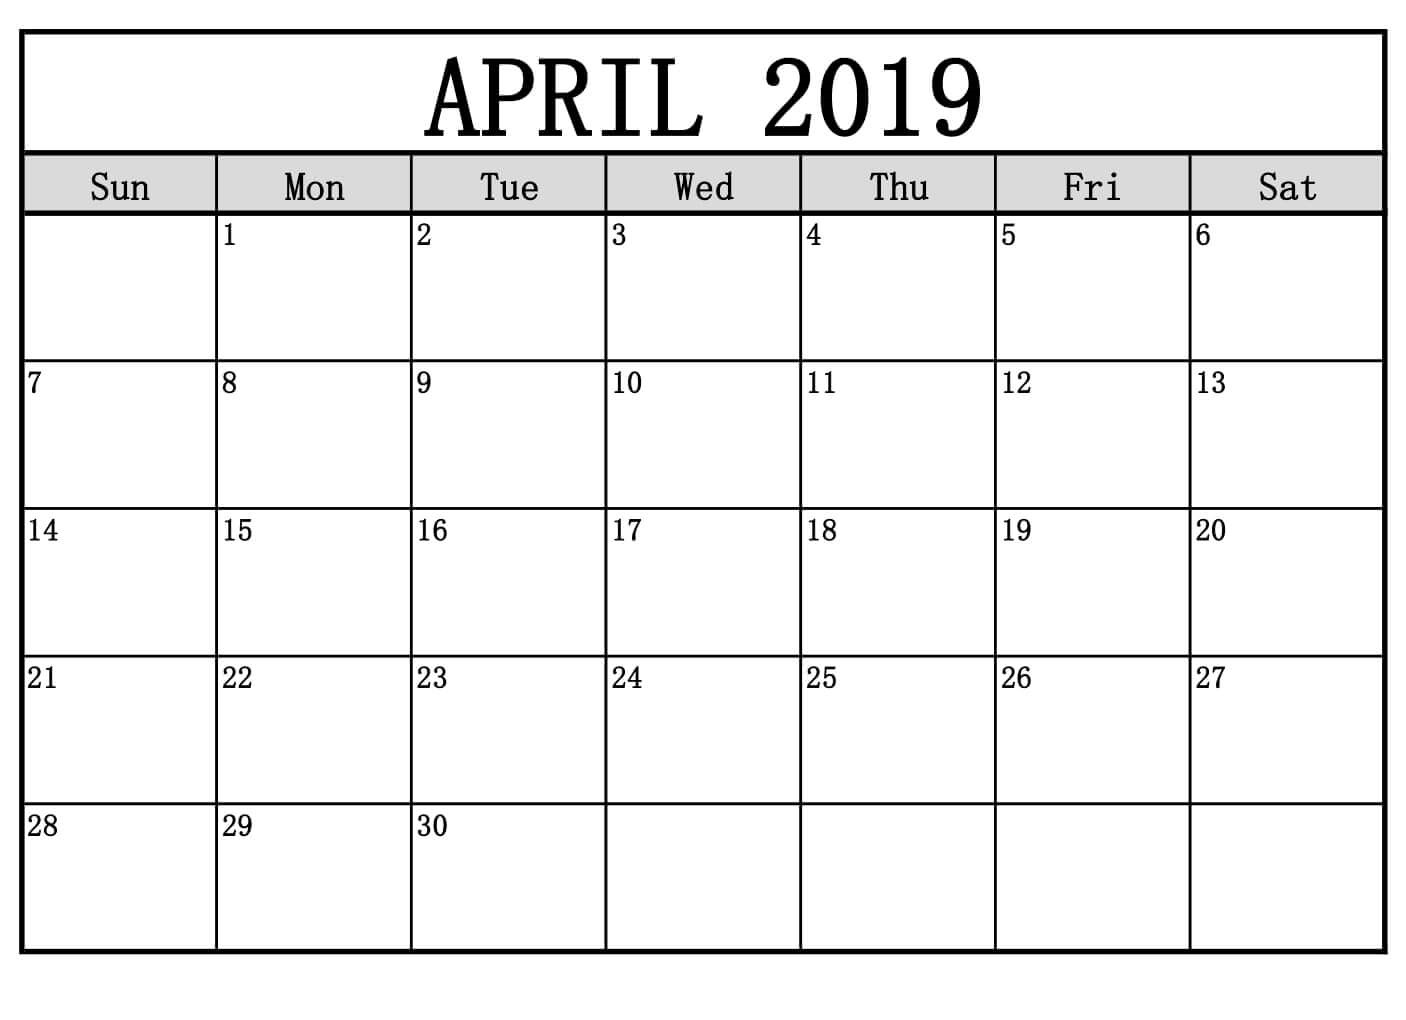 April 2019 Calendar Word Document